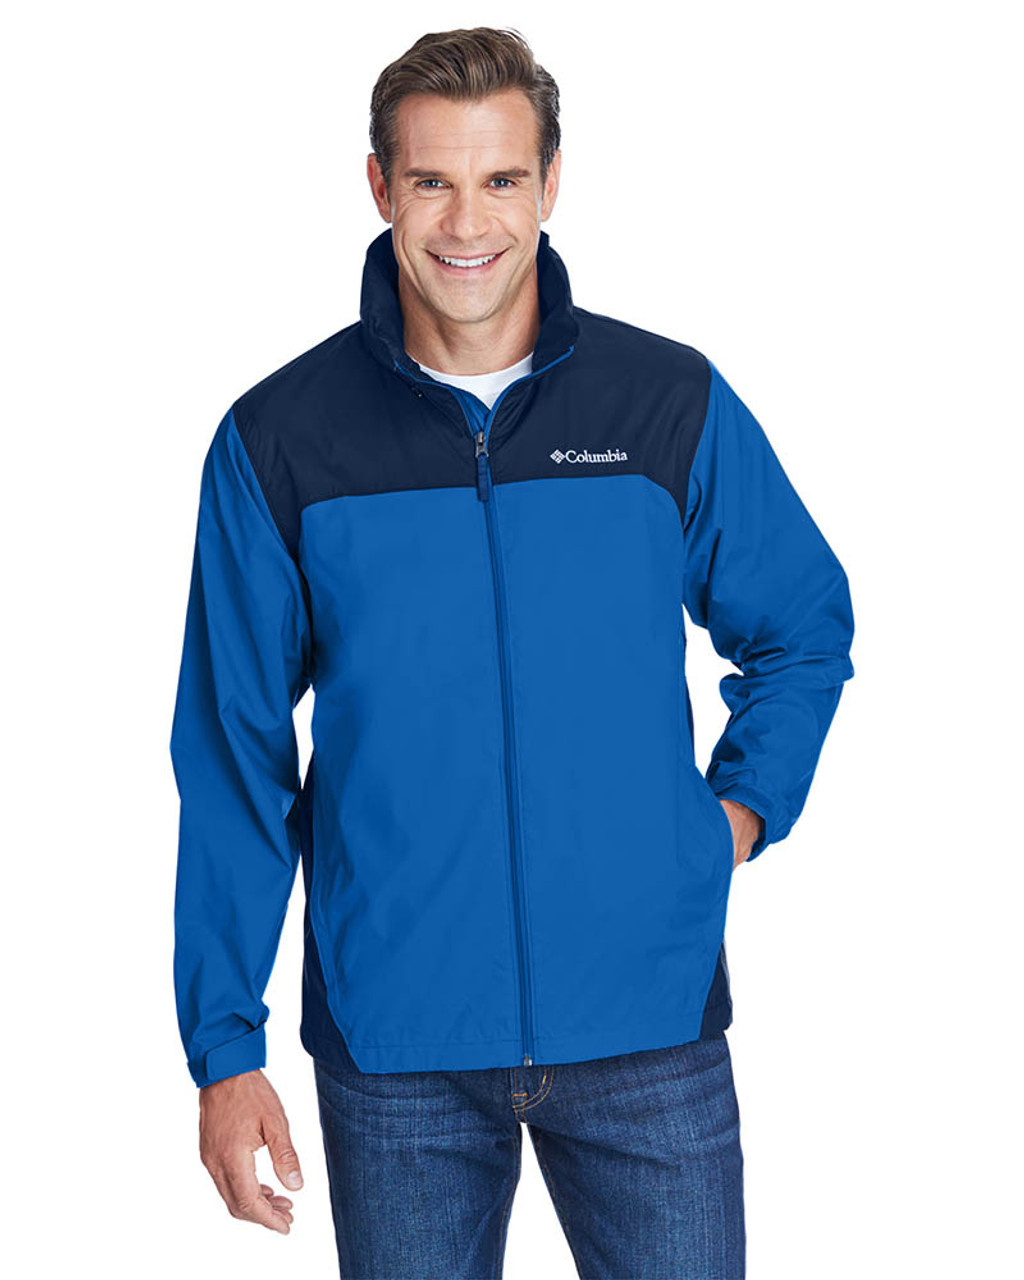 Blue Jay/Navy - 2015 Columbia Men's Glennaker Lake™ Rain Jacket  | BlankClothing.ca